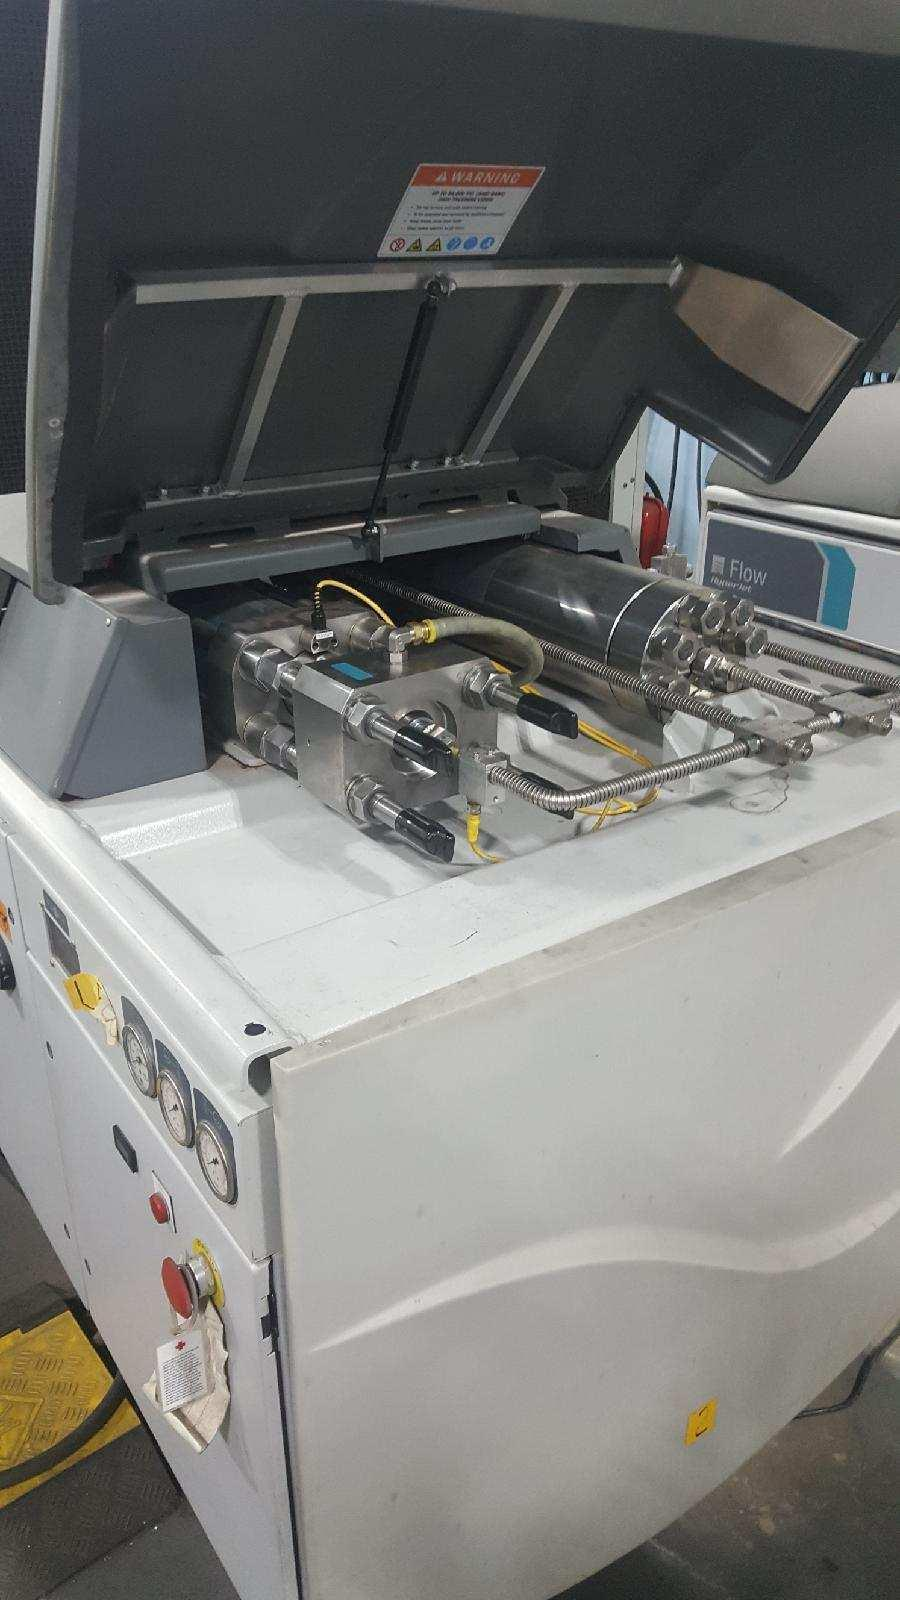 FLOW2017 Flow Mach 500 5-Axis Waterjet Cutting Systems - 2 Available!